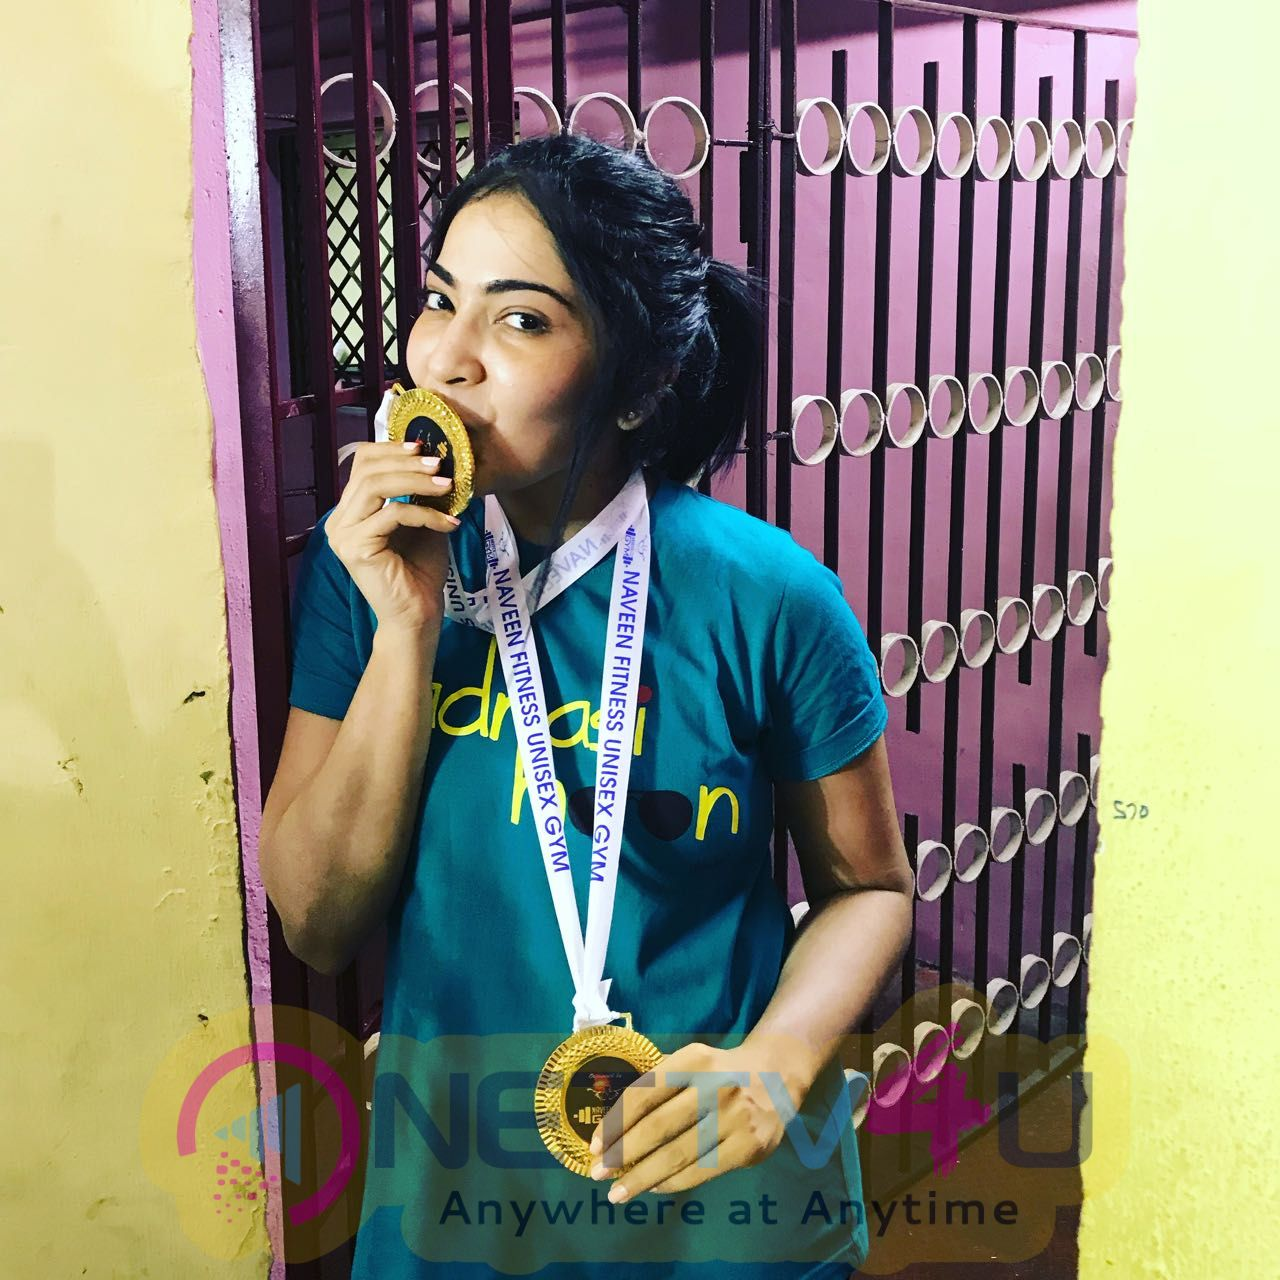 V J Ramya Subramanian Got Two Gold Medals In Dead Life And Bench Press Championships Tamil Gallery